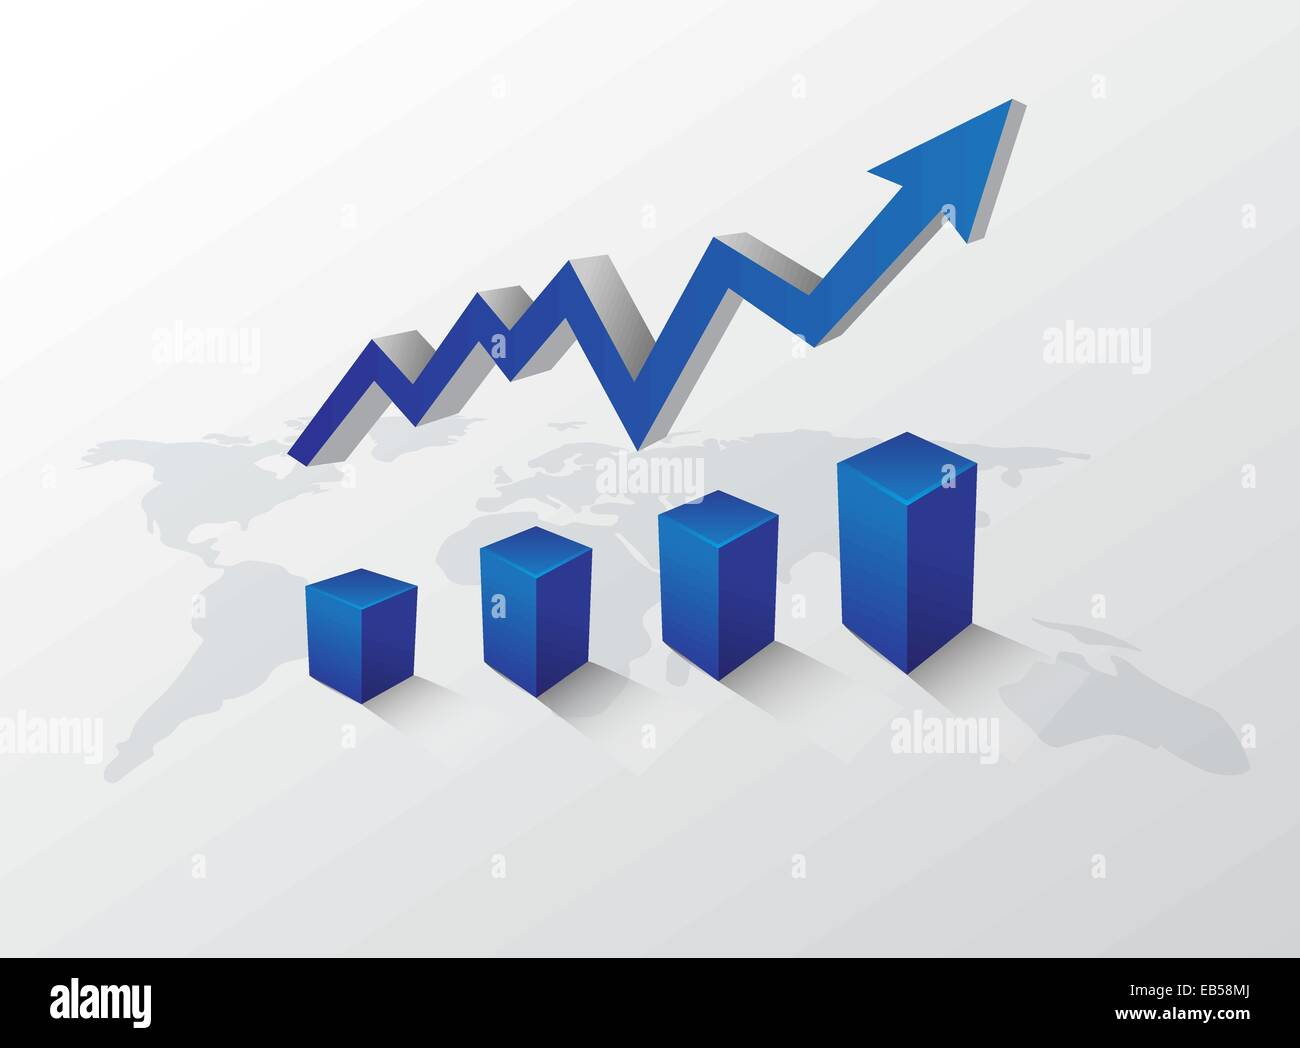 Arrow pointing up with graph on world map stock vector art arrow pointing up with graph on world map gumiabroncs Image collections